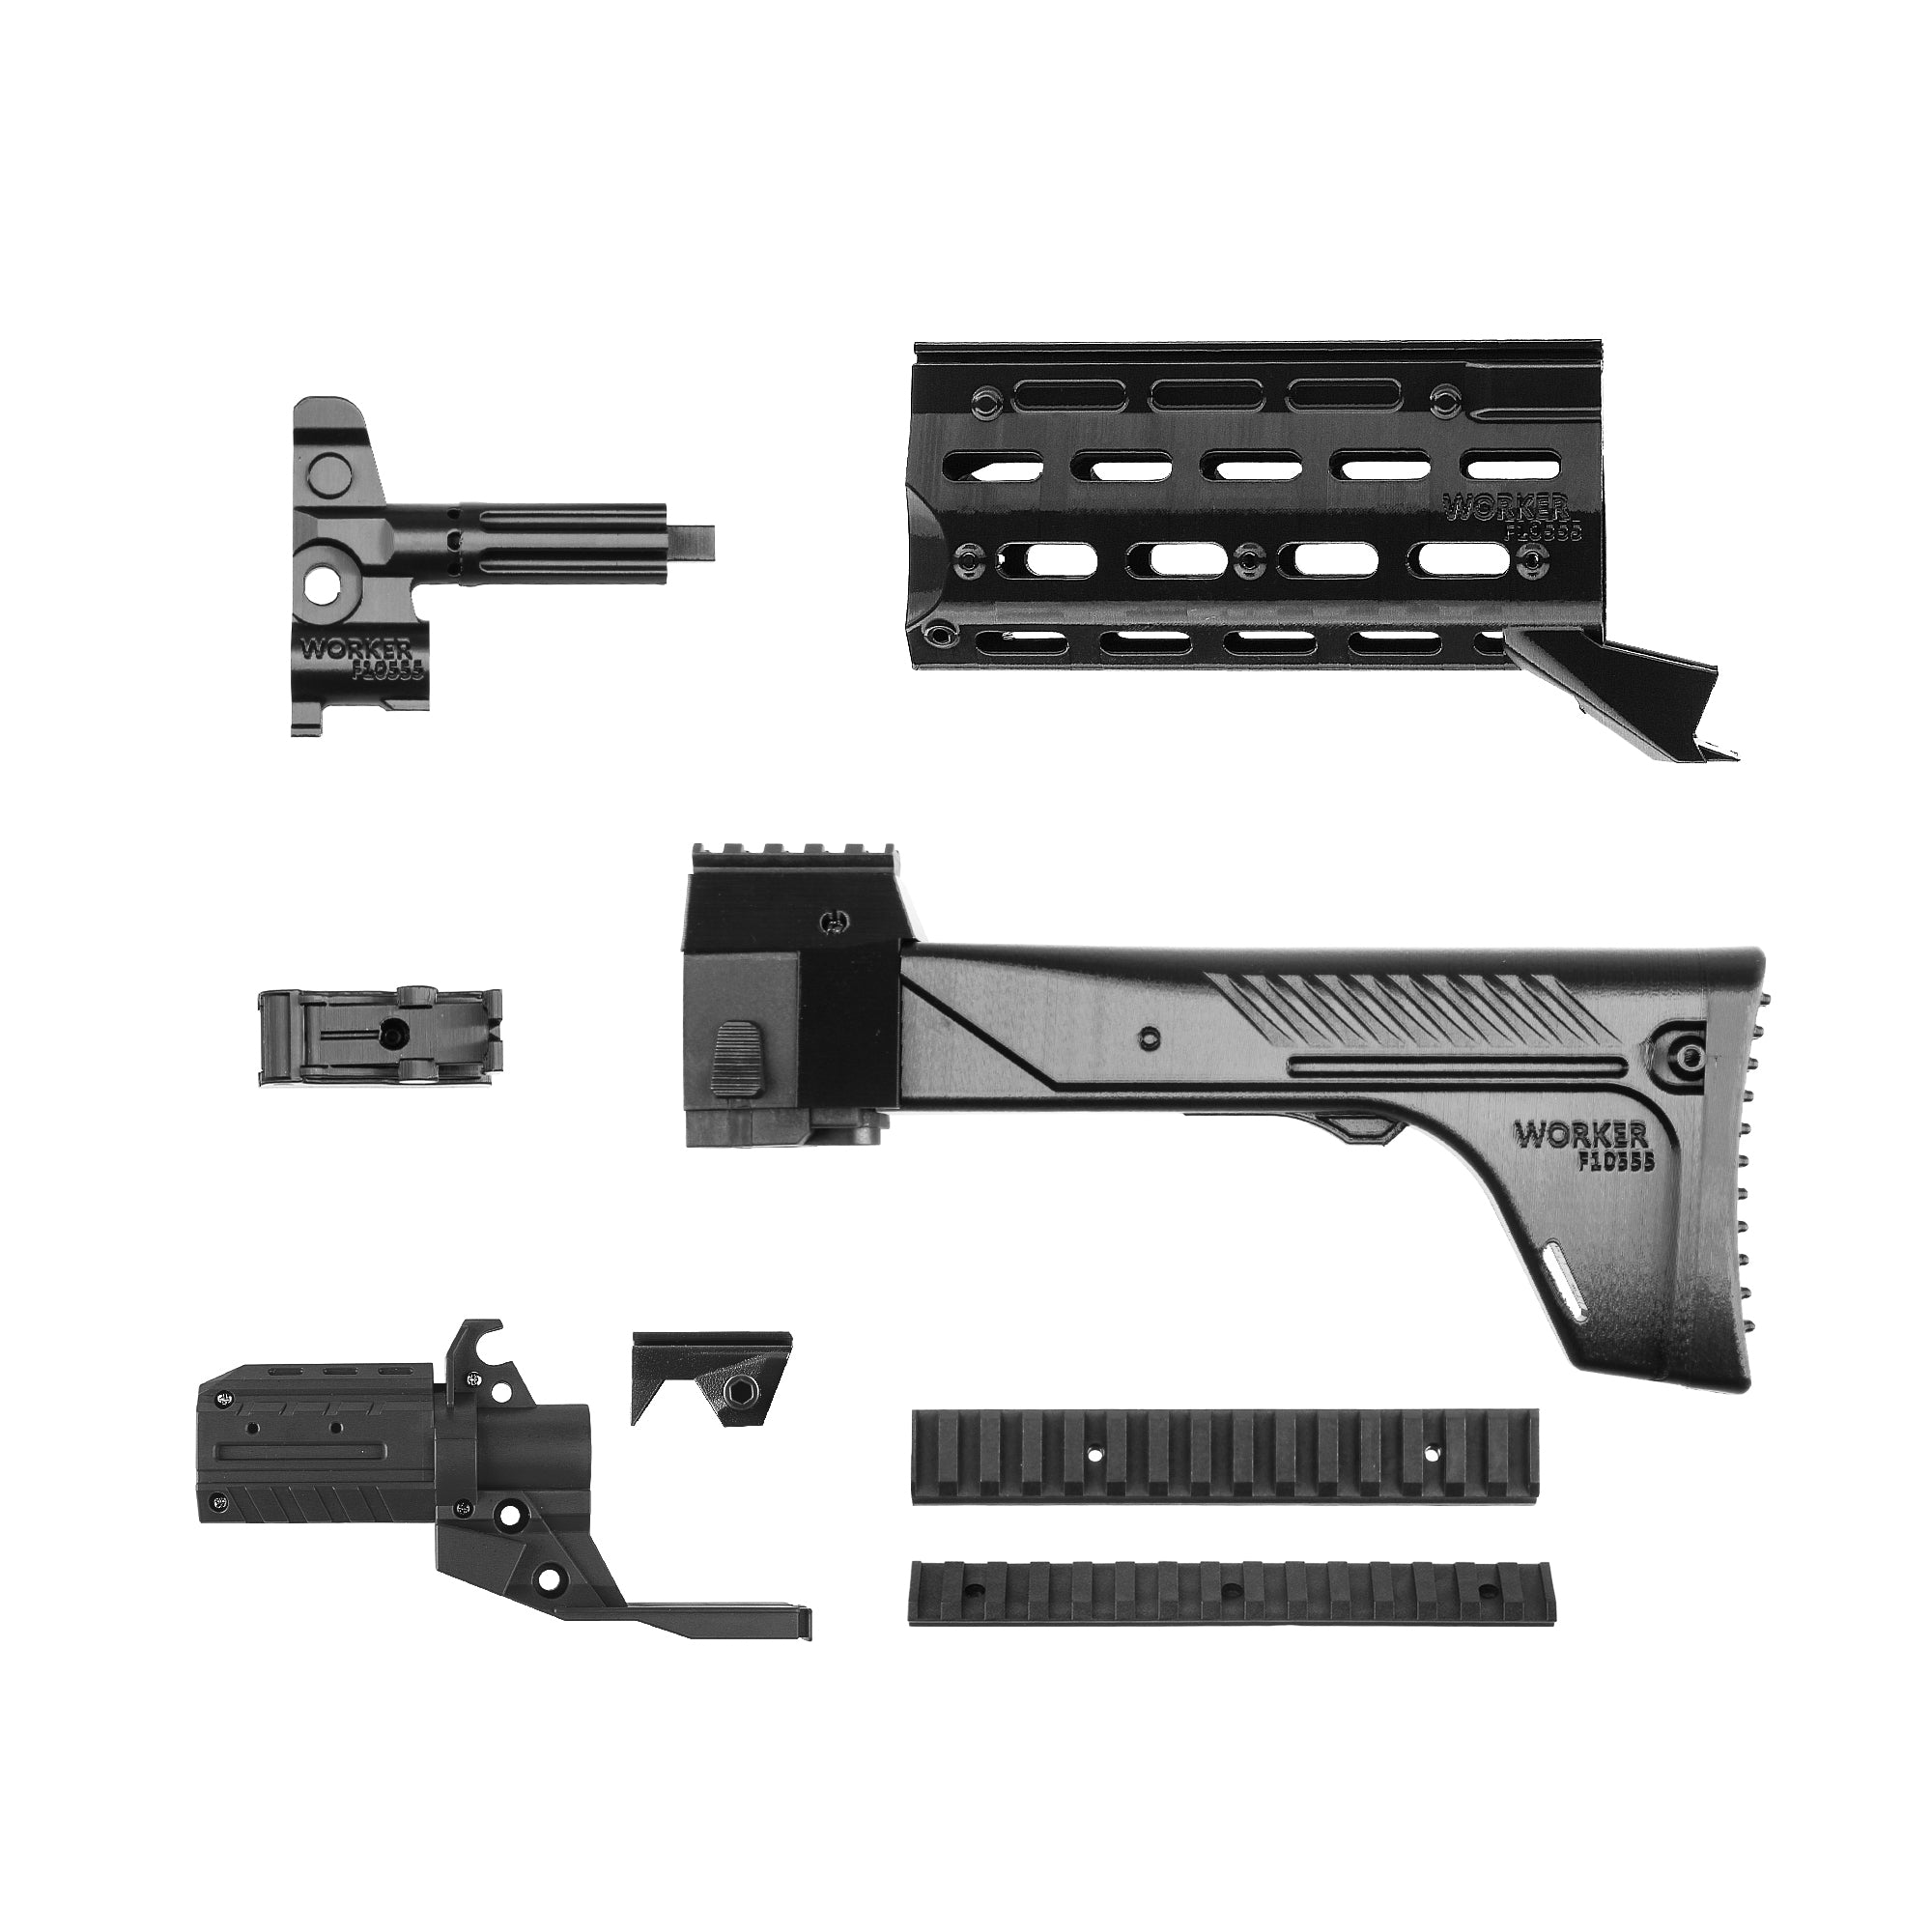 JGCWorker STF-W001 AK-12 A Style Mod Kits Set With Black Adaptor for Nerf N-Strike Elite Stryfe Blaster - Nerf Mod Kits -Worker Mod Kits